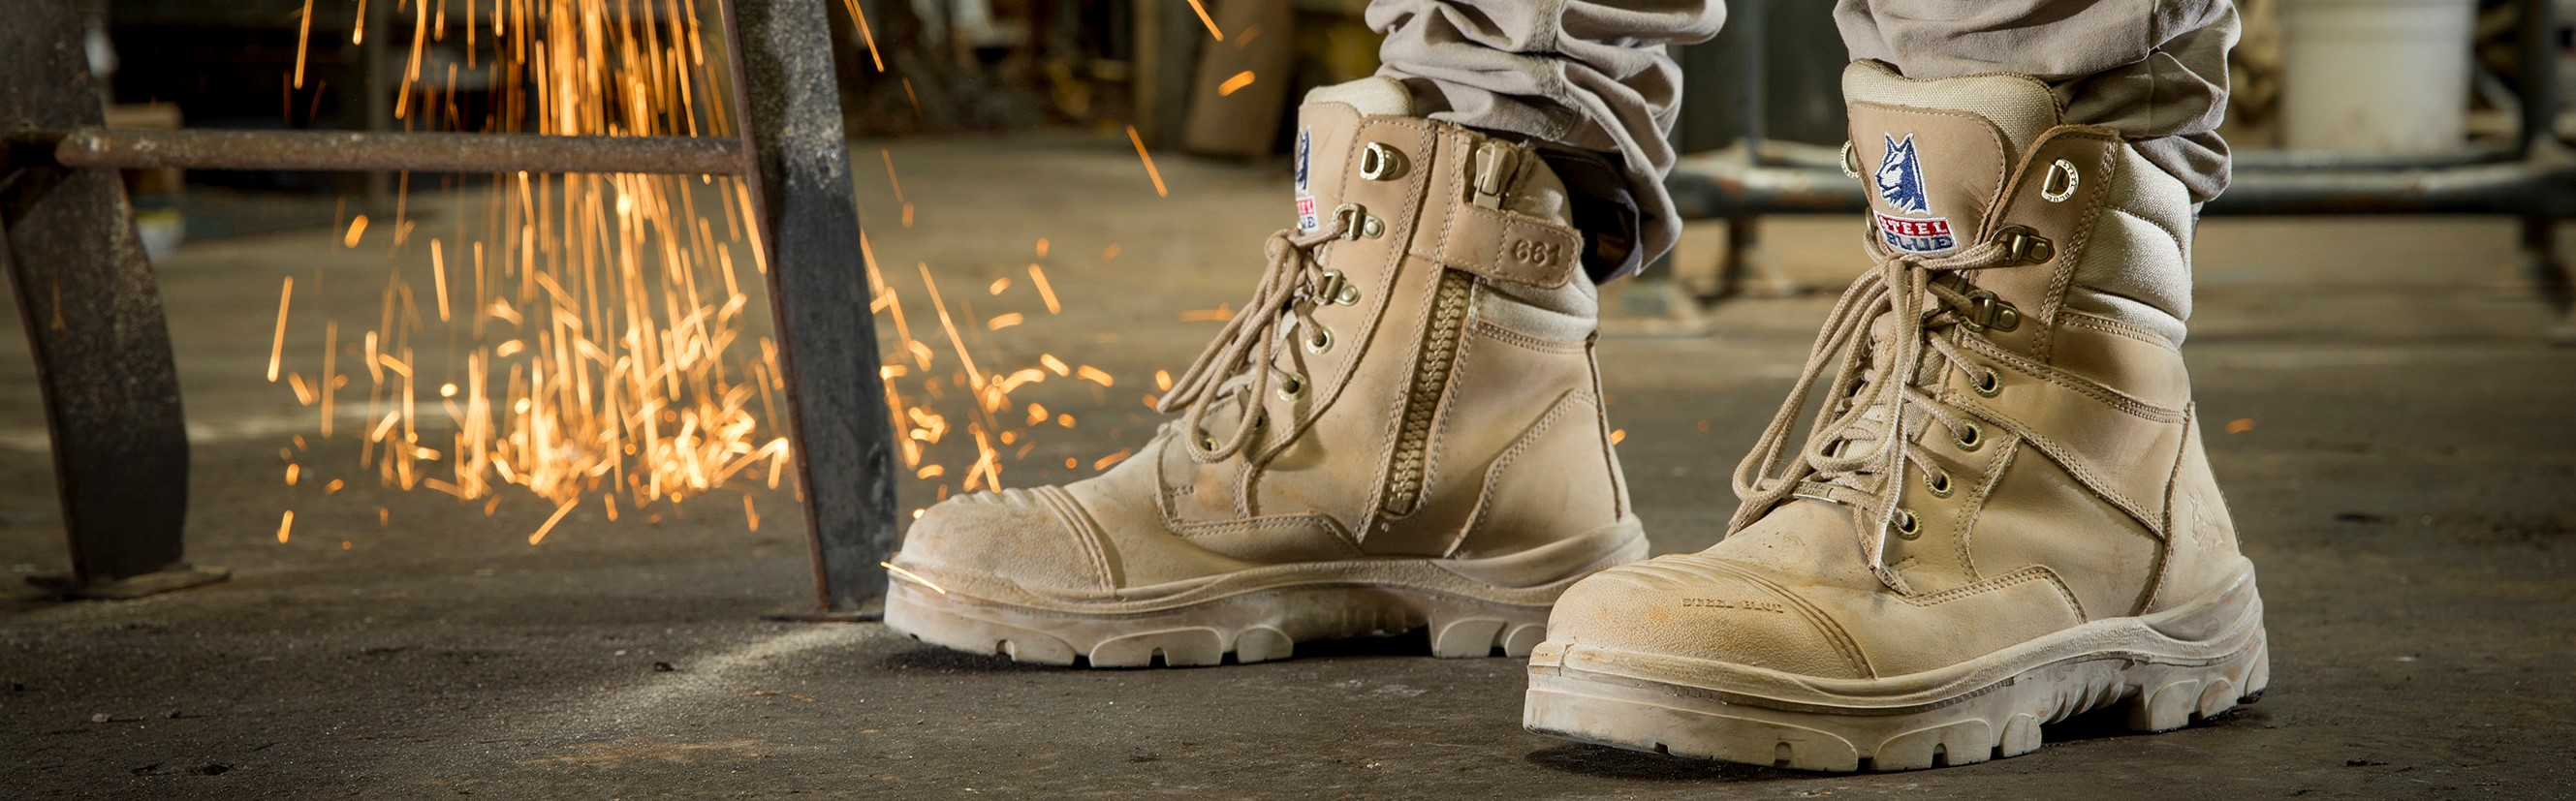 dcaad91dc2f Steel Blue Makes The Most Comfortable Work Boots | Steel Blue